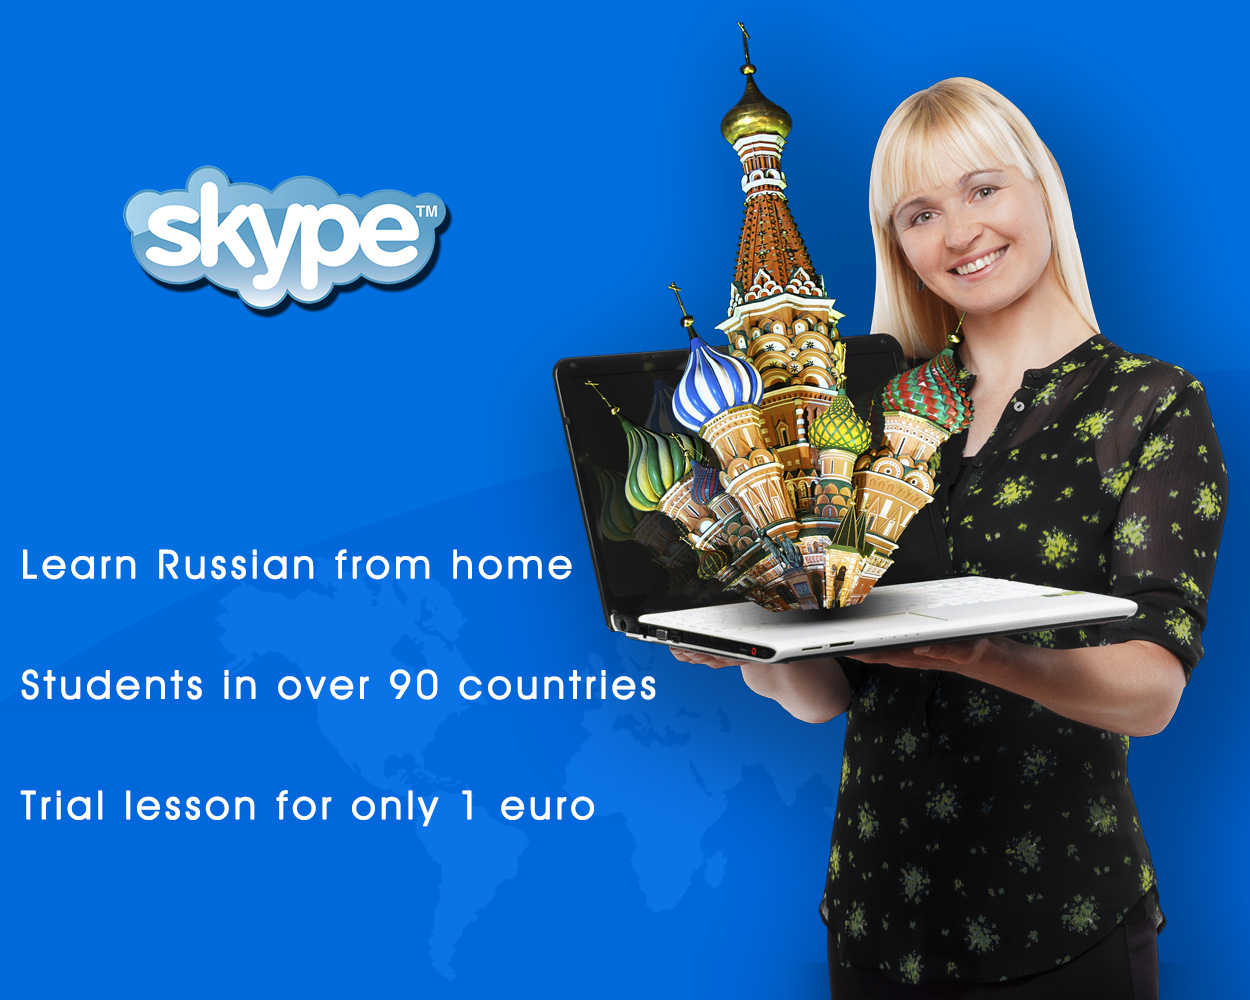 Take One-to-one Russian lessons